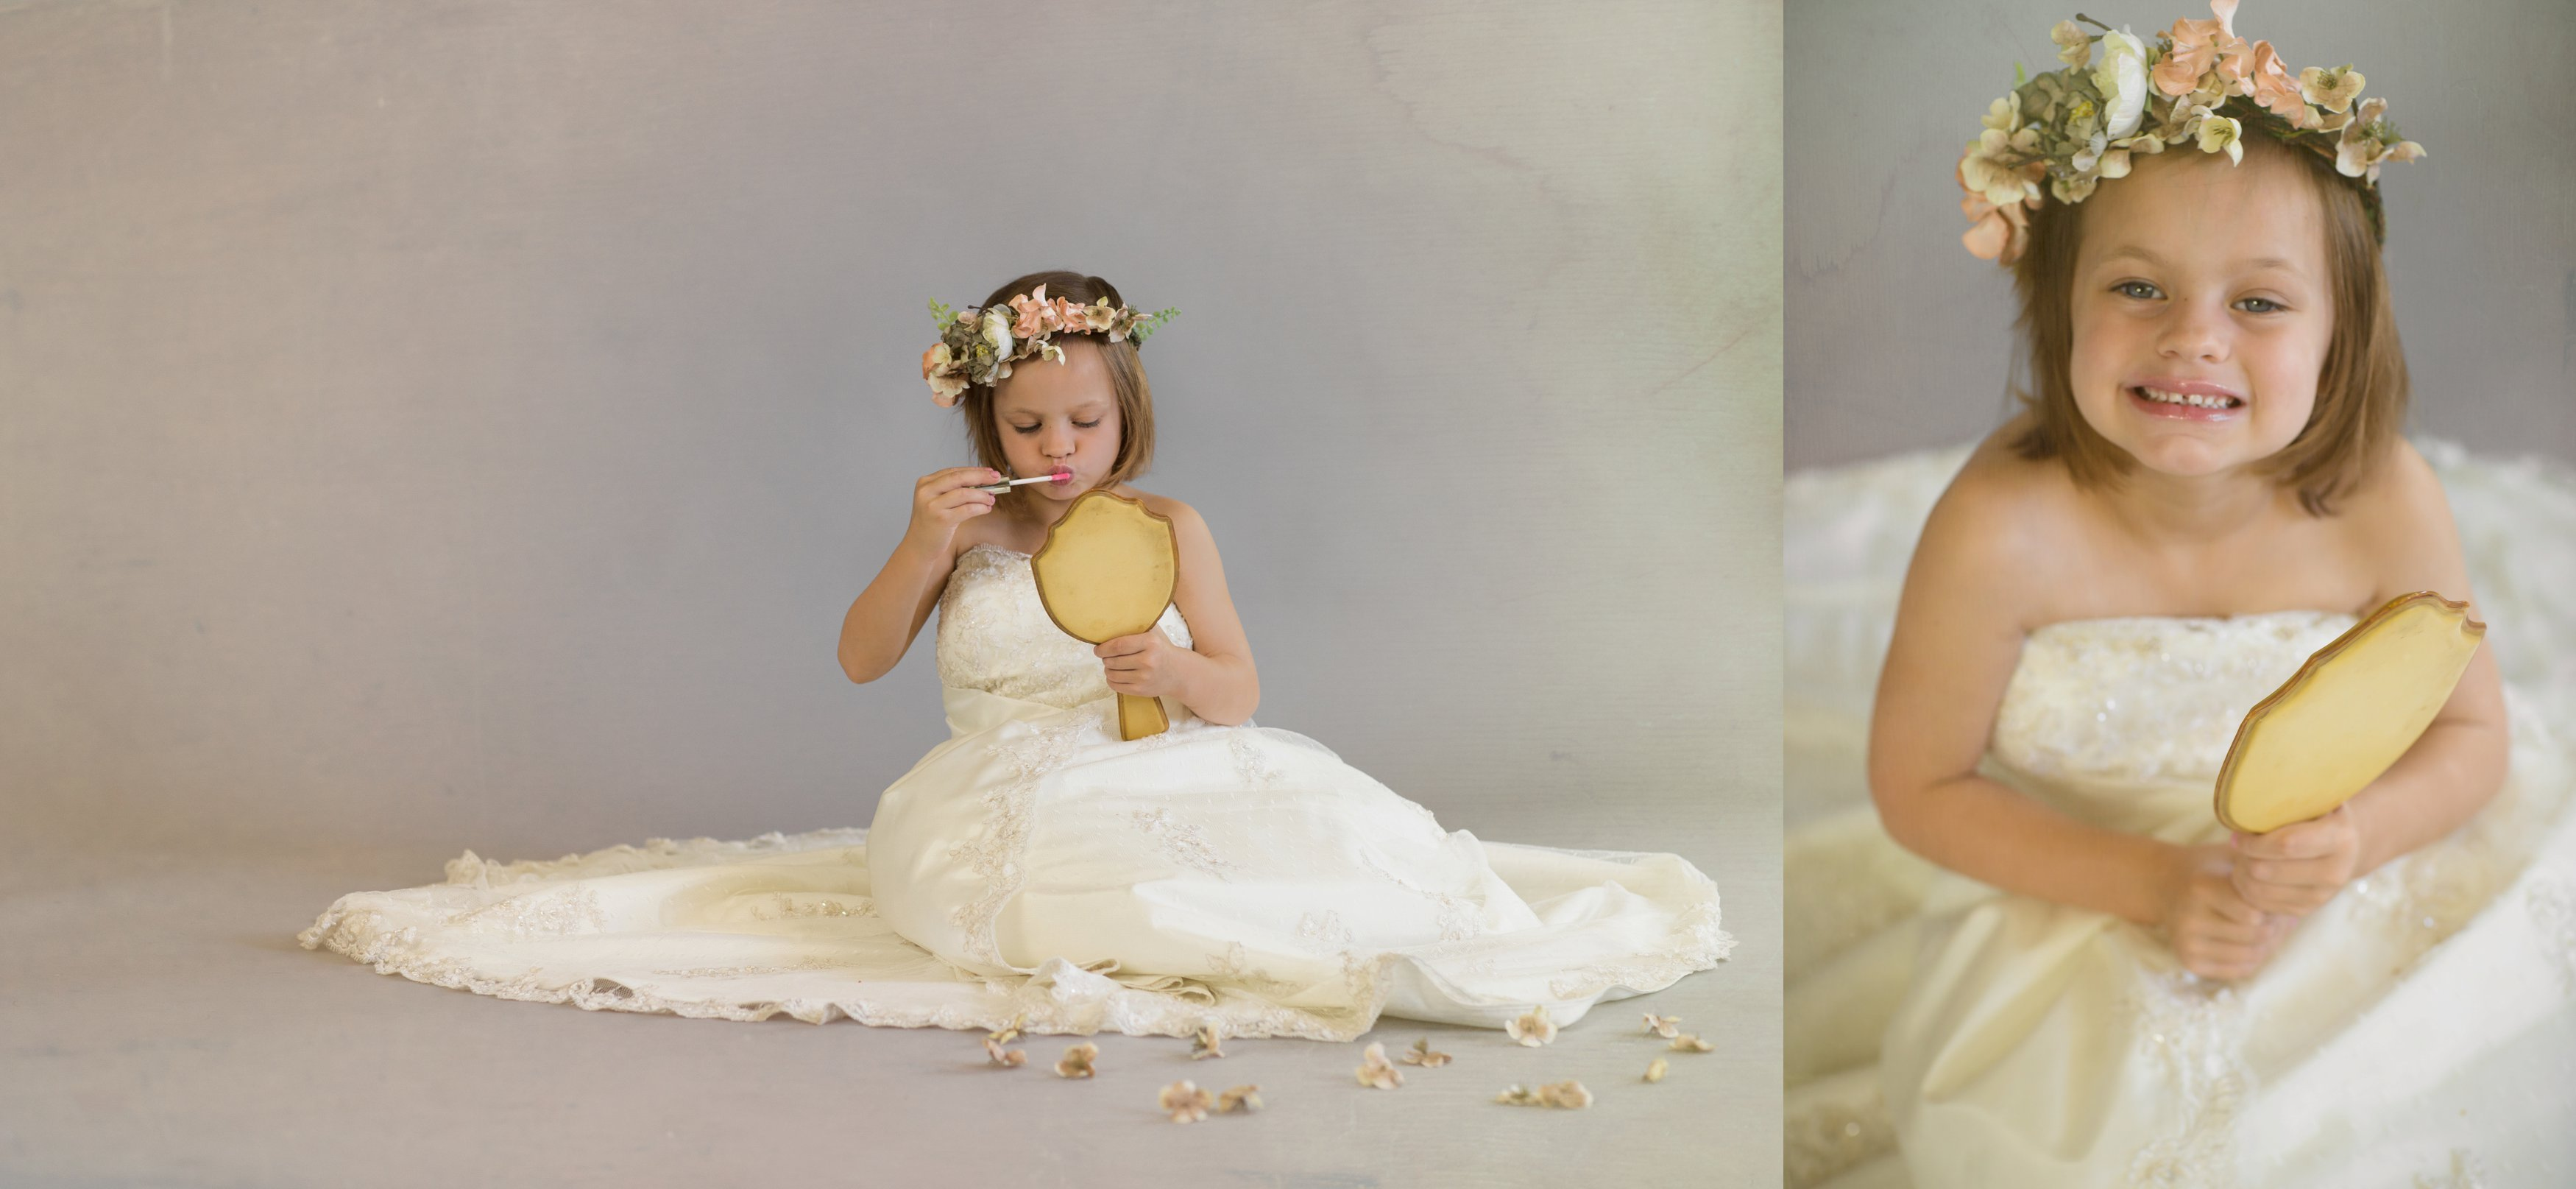 moms wedding dress session child photographer fine art session brandon florida mom's wedding dress 07 27